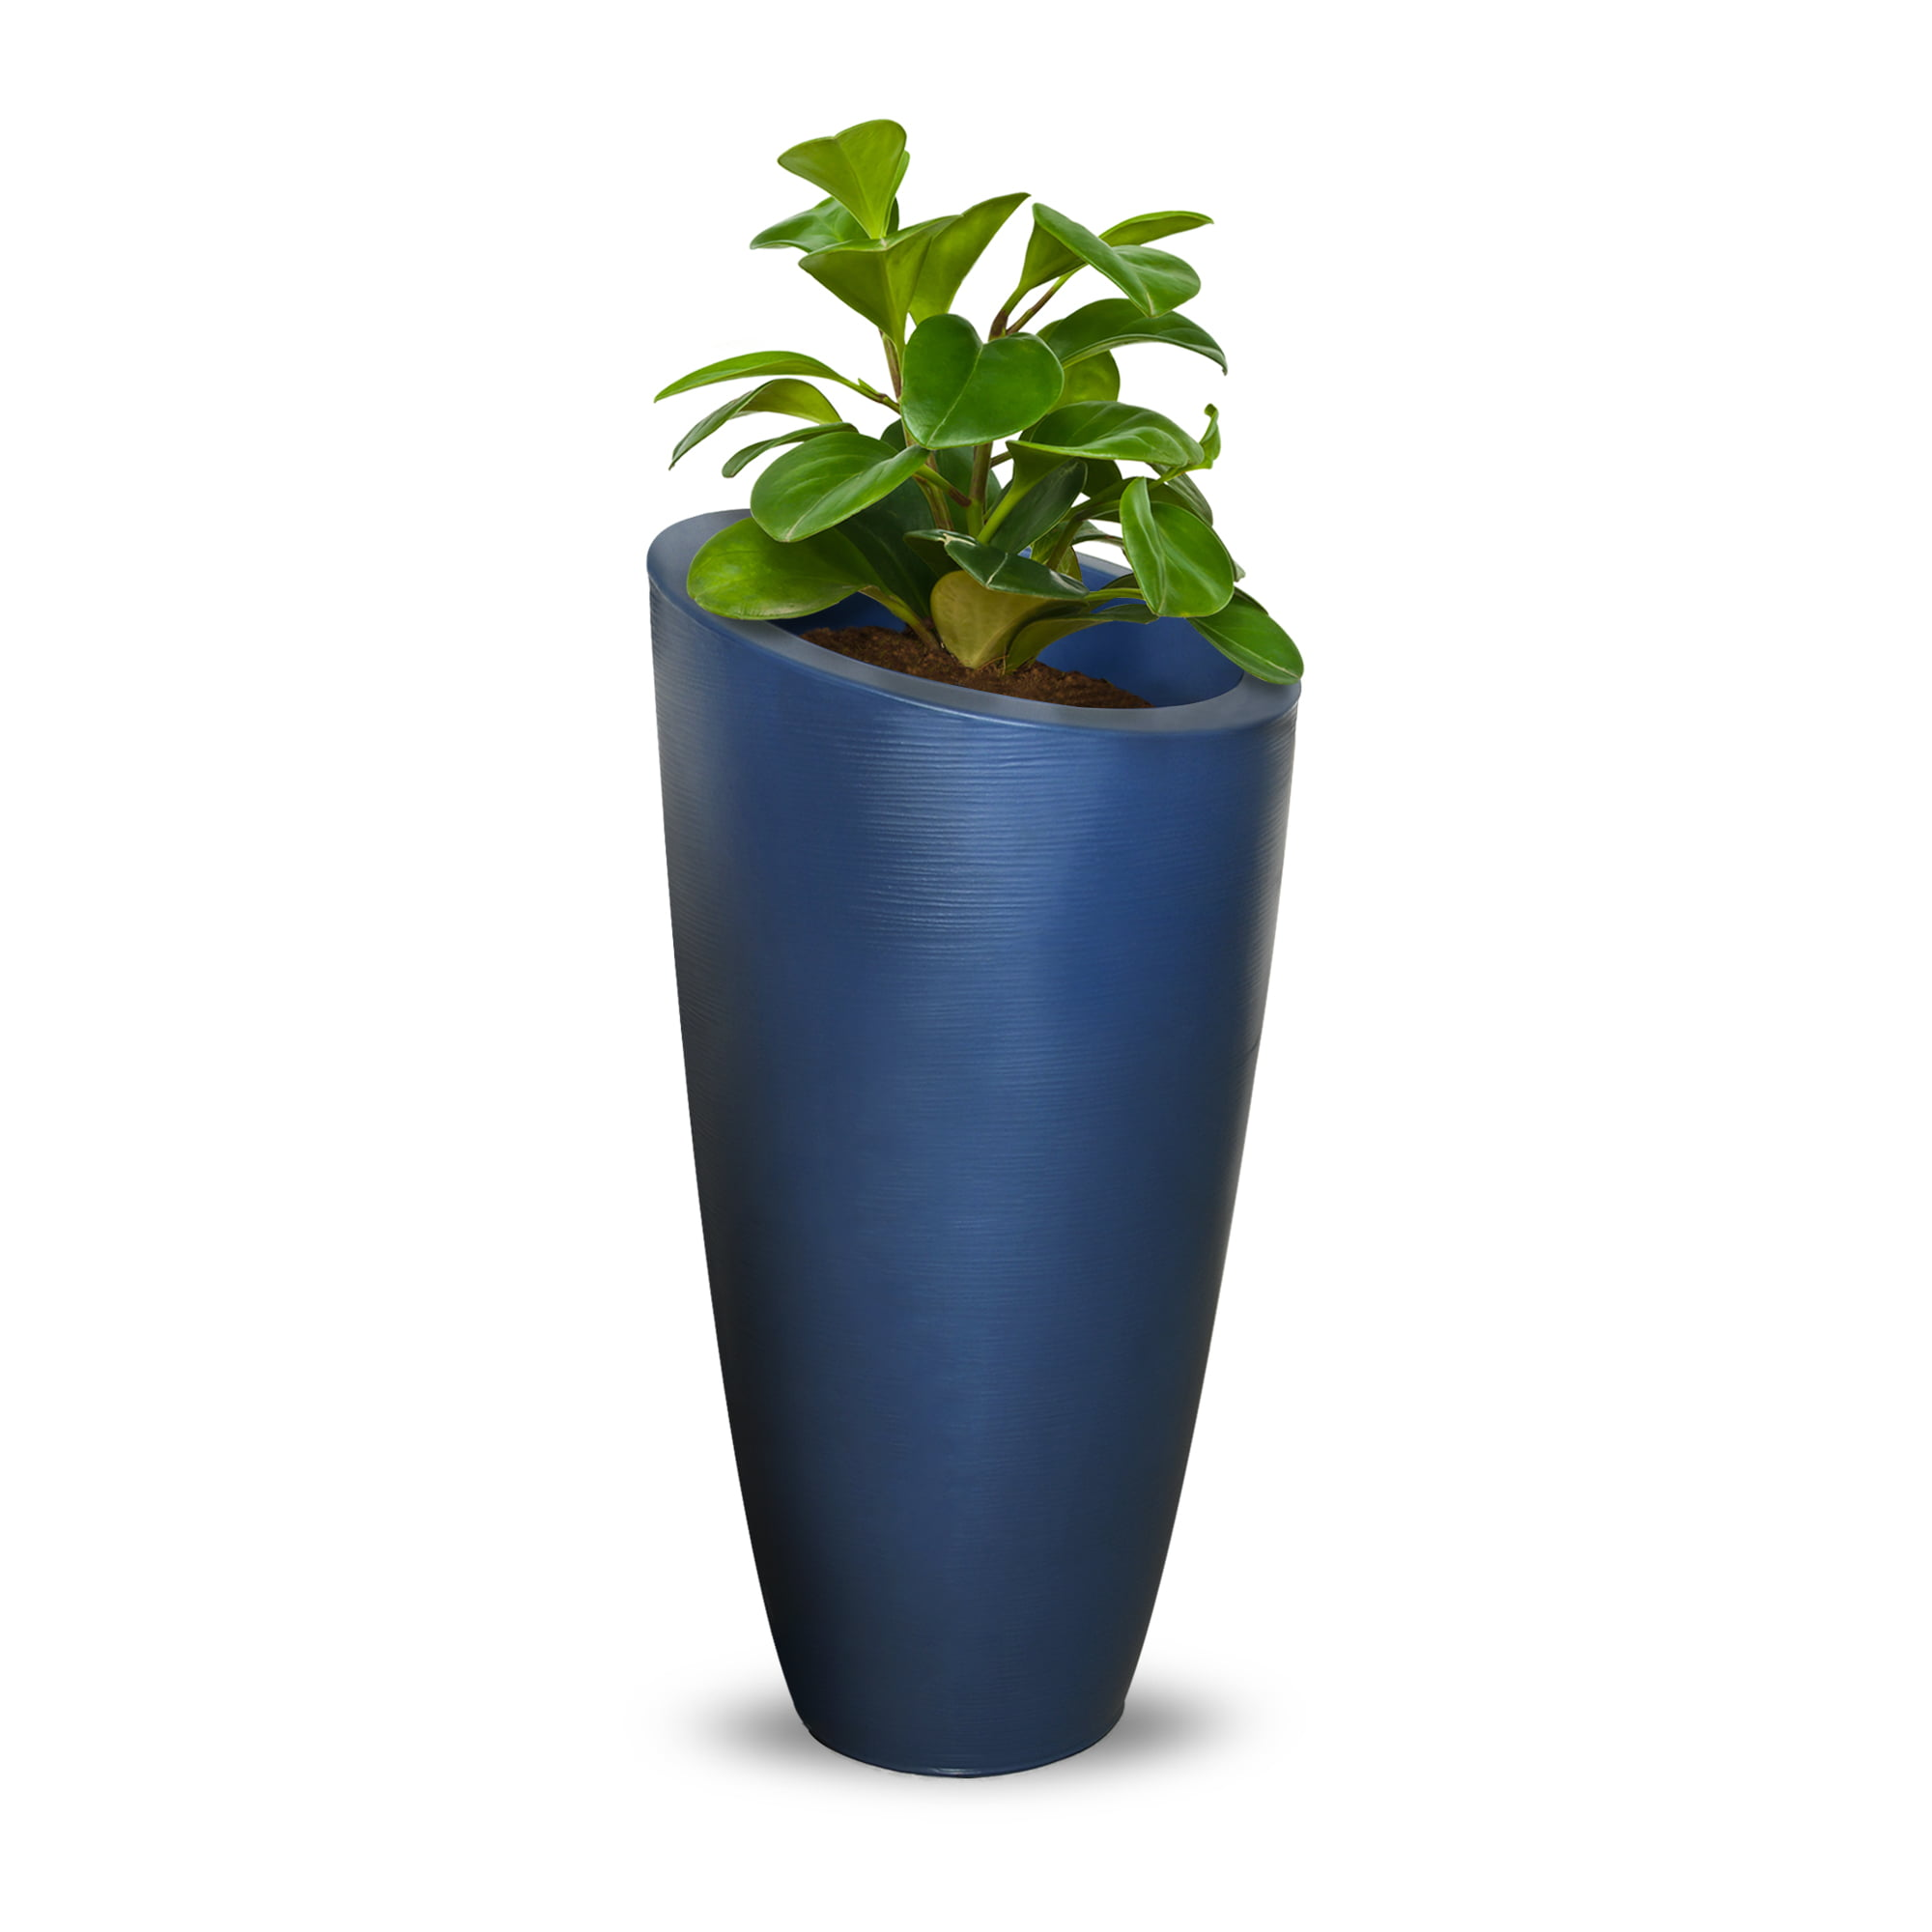 Modesto 32in Tall Planter Neptune Blue by Mayne Inc.